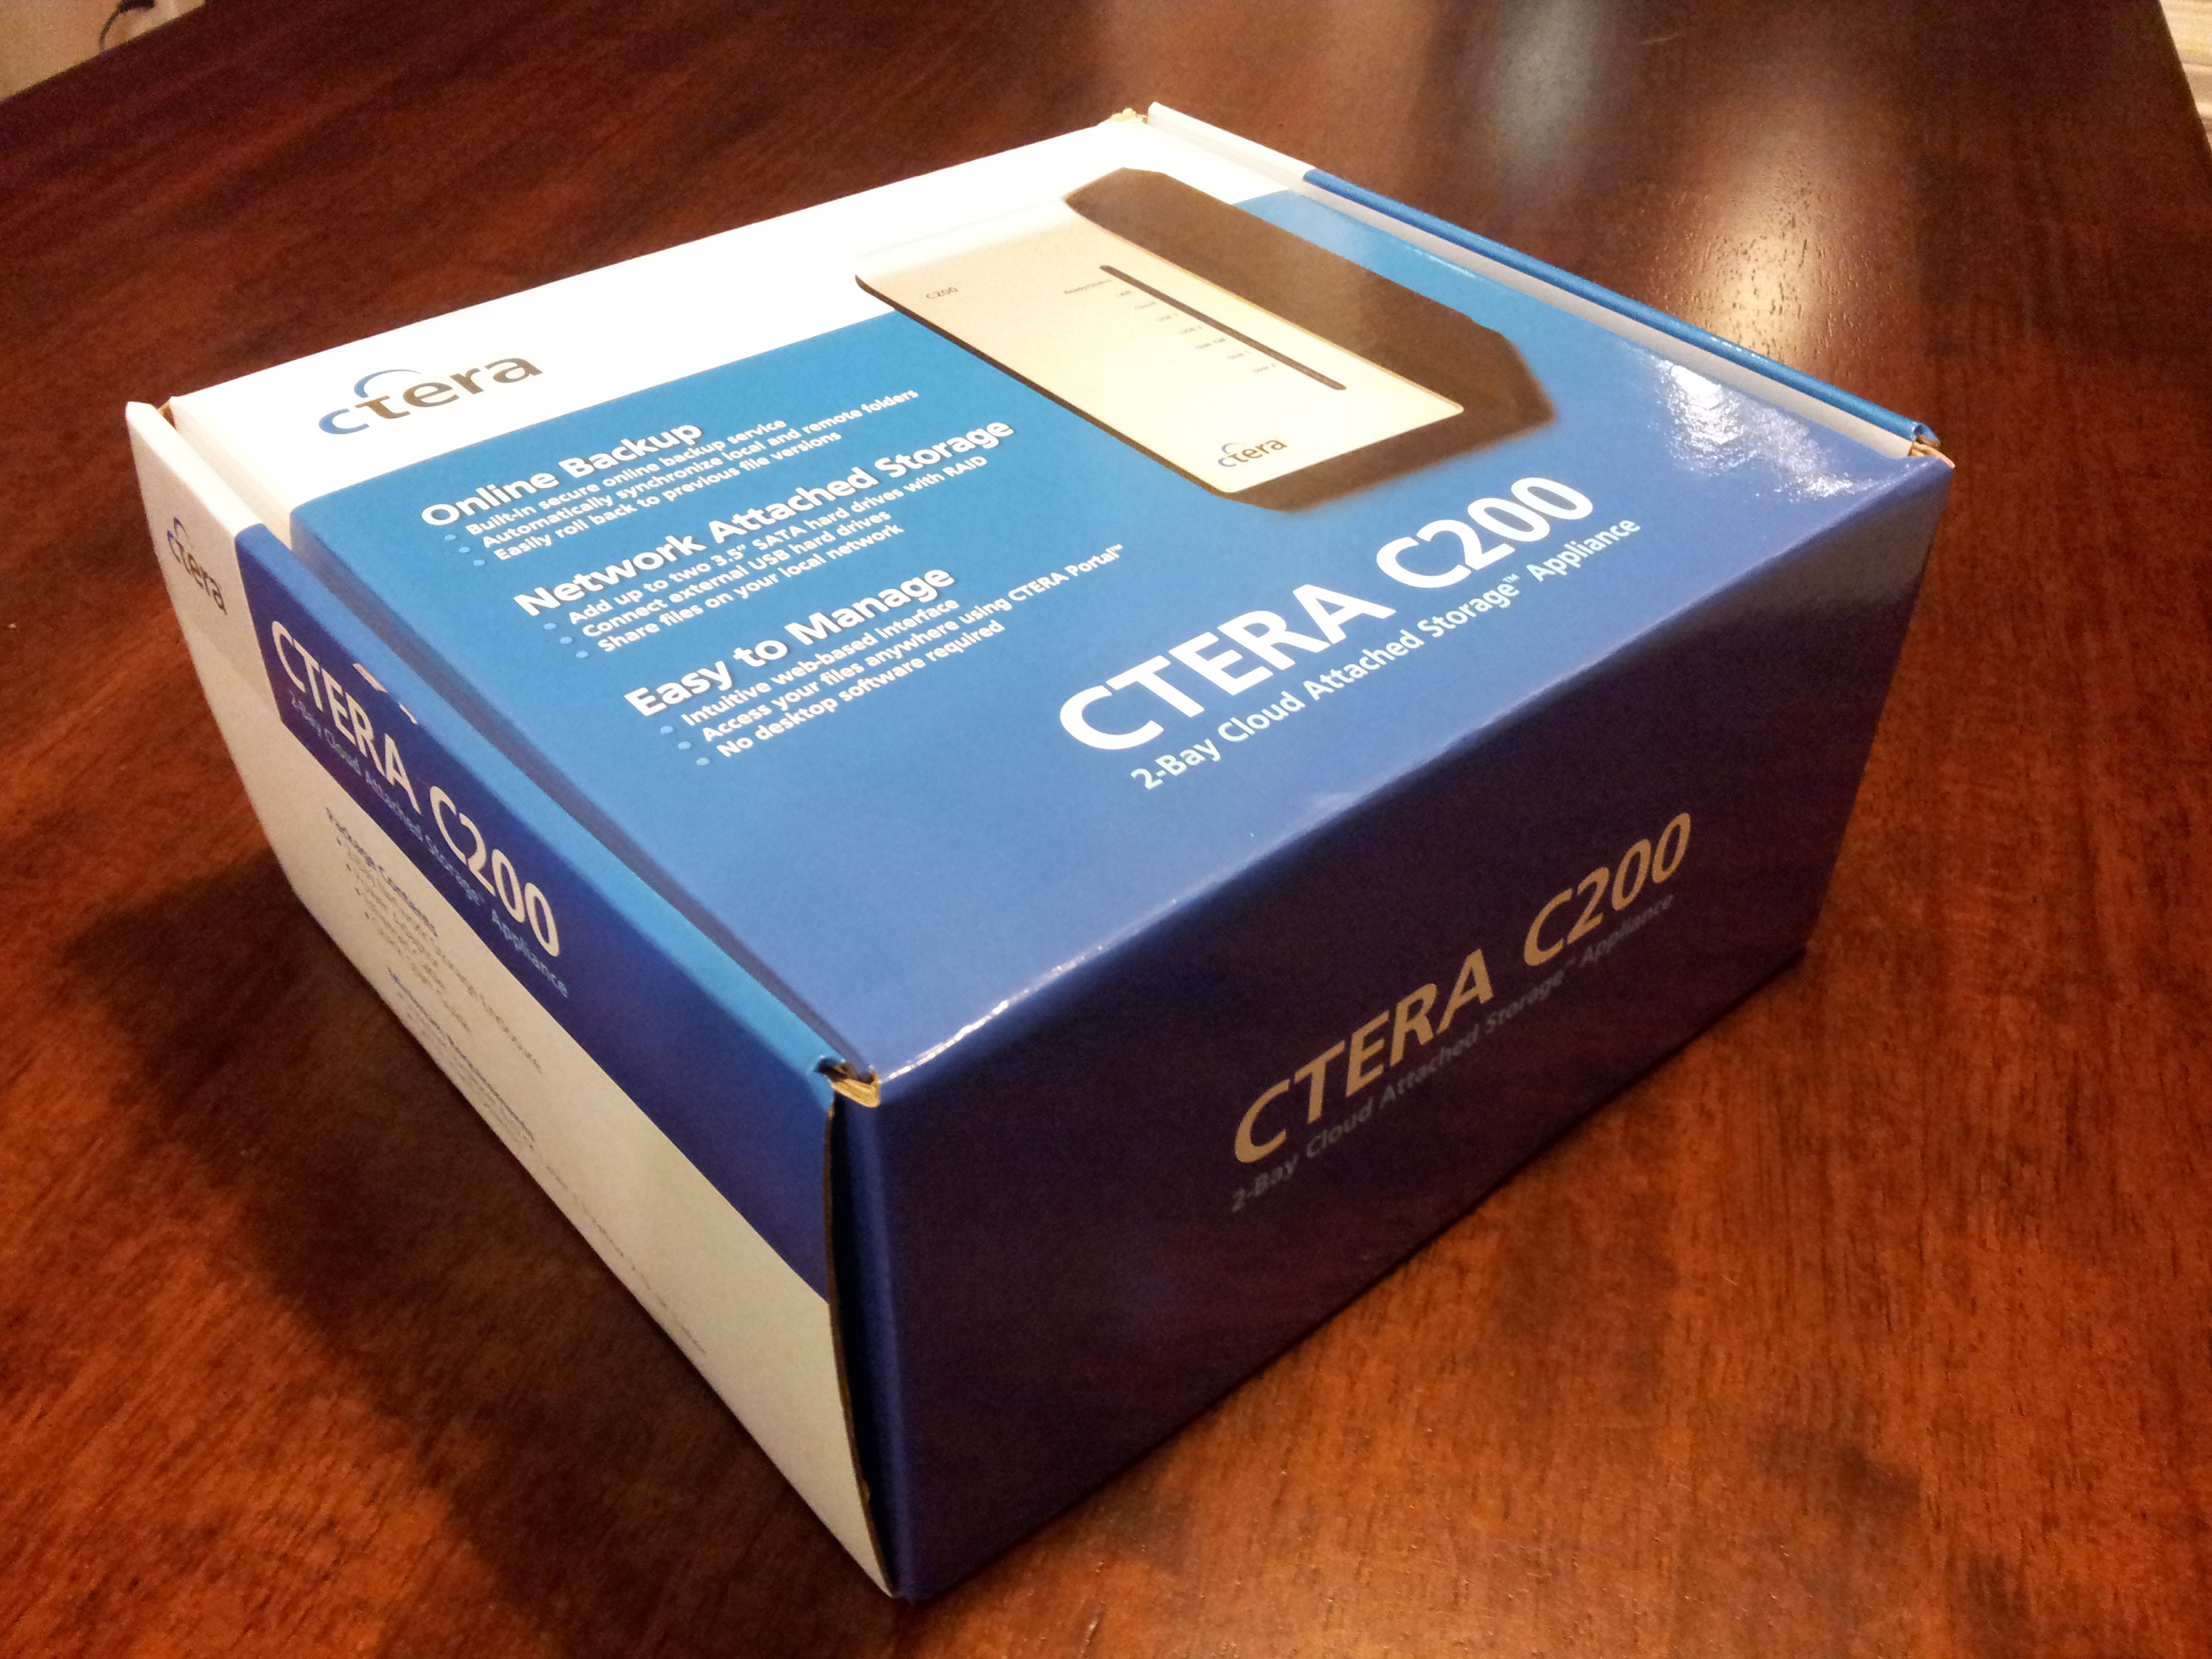 CTERA-C200-C400-C800-CloudPlug-Review-Unopened-Box-Packaging